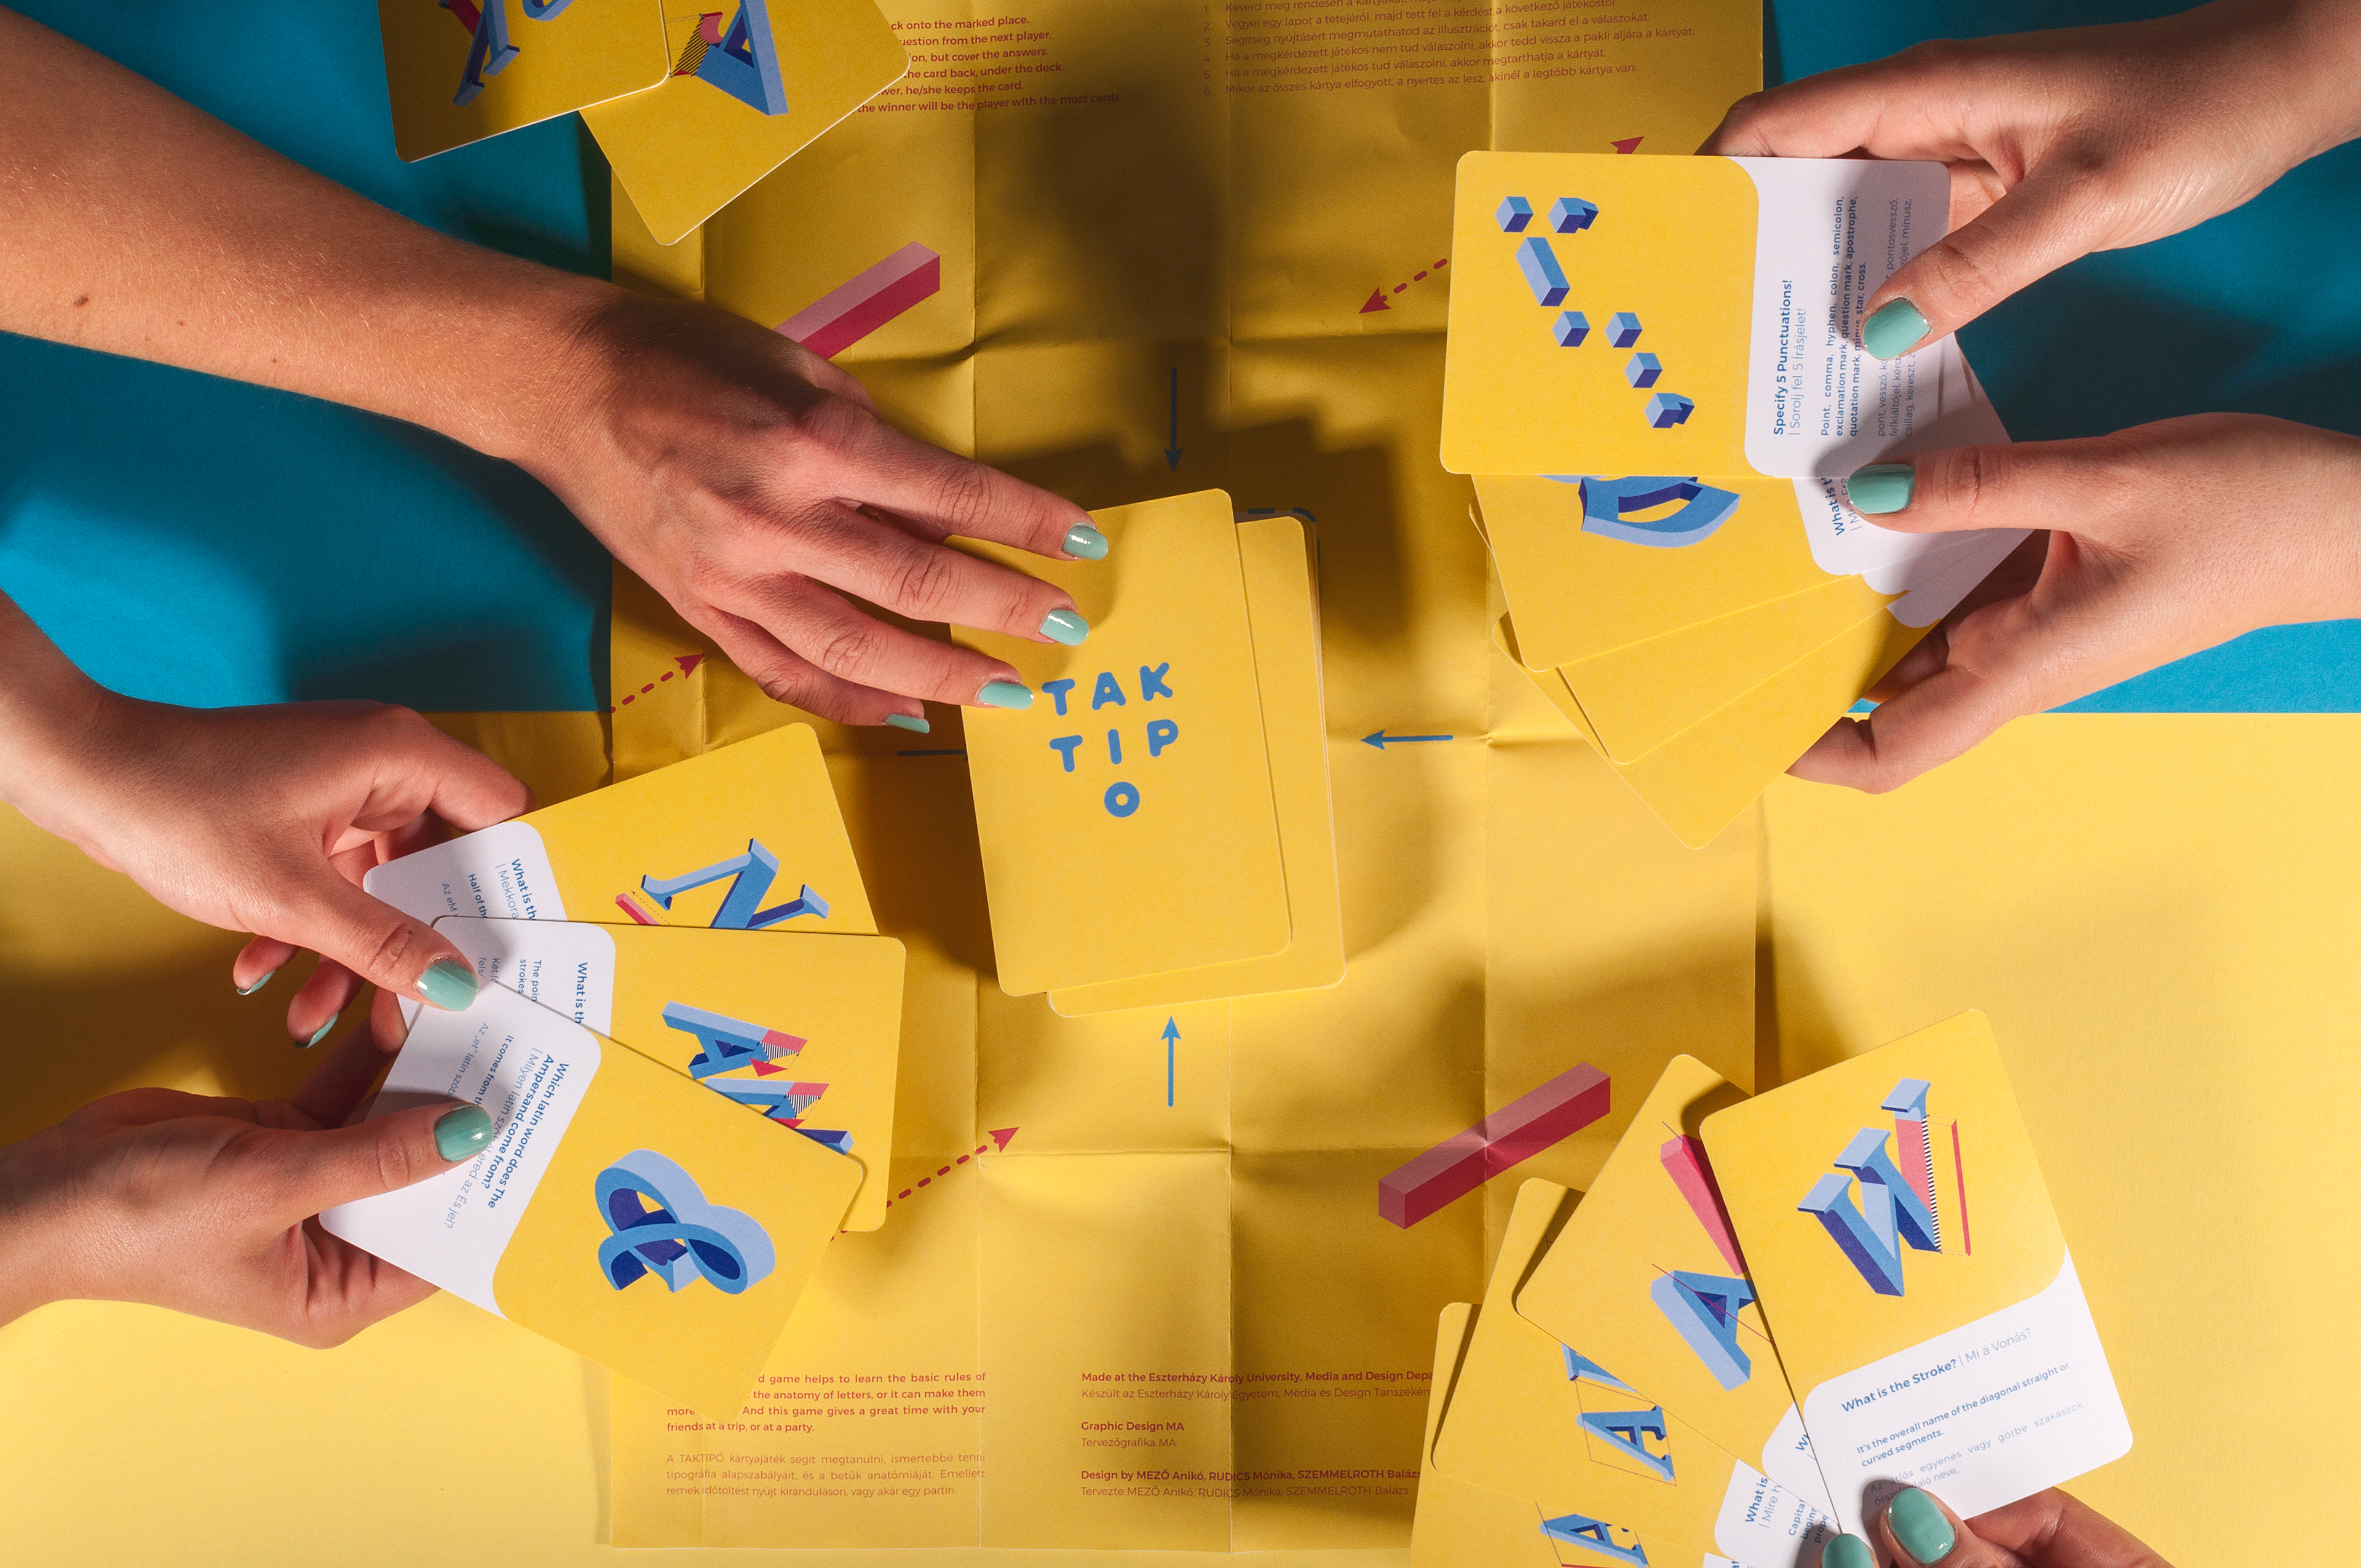 Taktipo Card Game On Behance